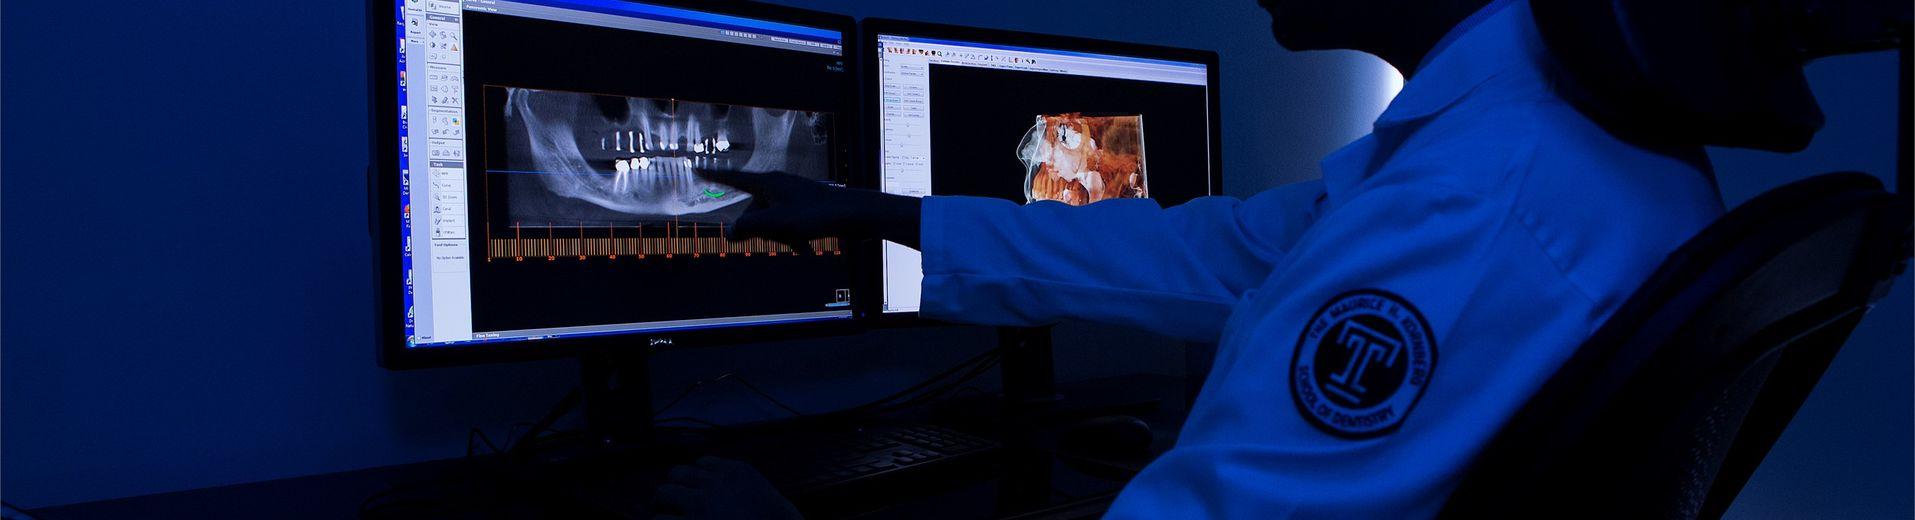 A male dental student looking at dental X-rays on a computer screen.